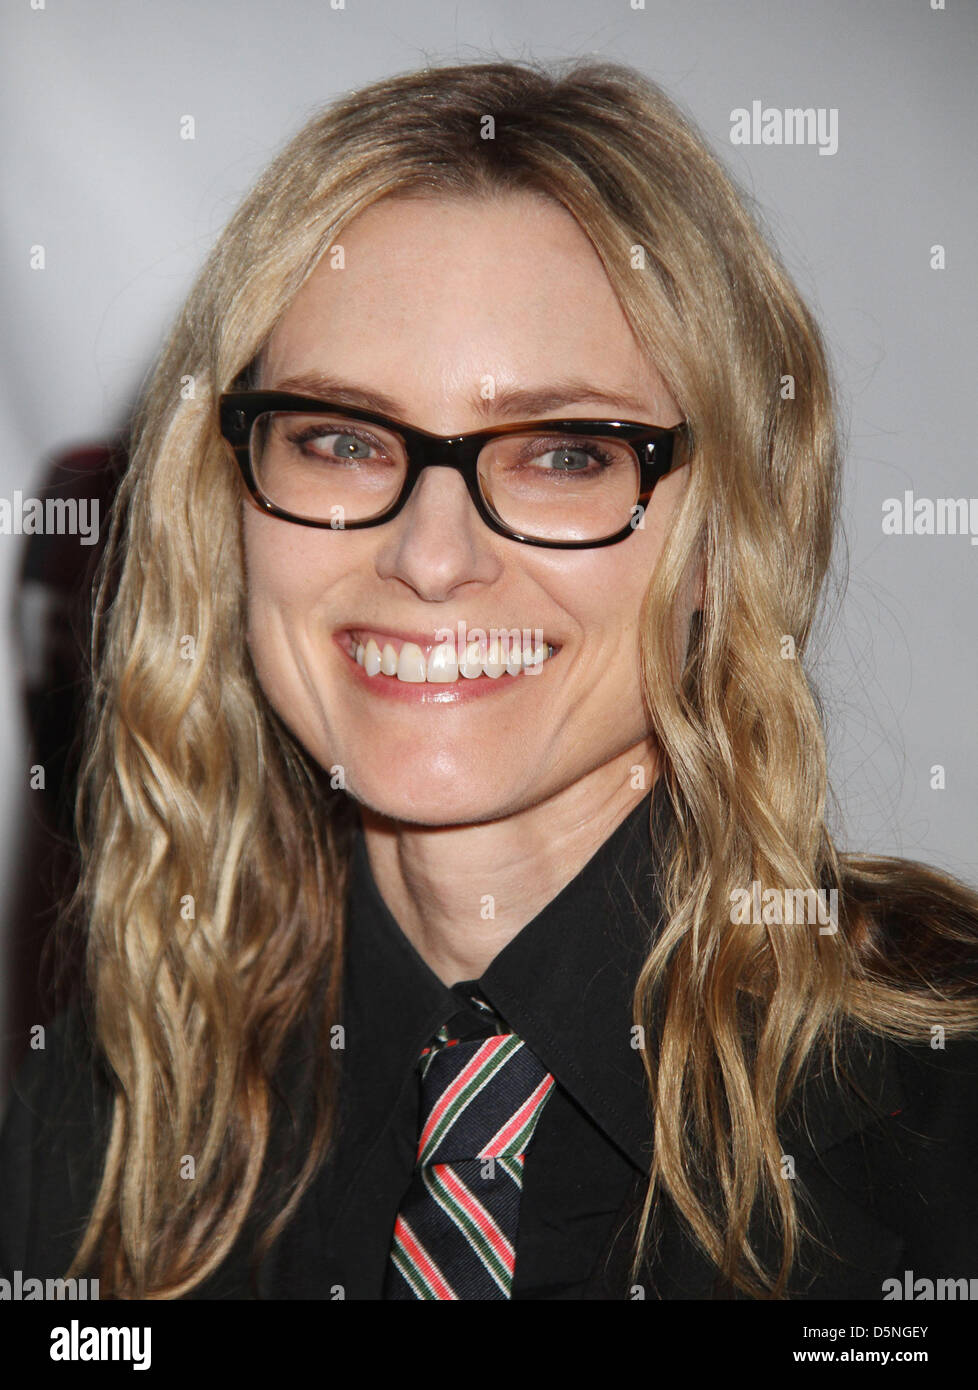 Communication on this topic: Persia Blue, aimee-mann/